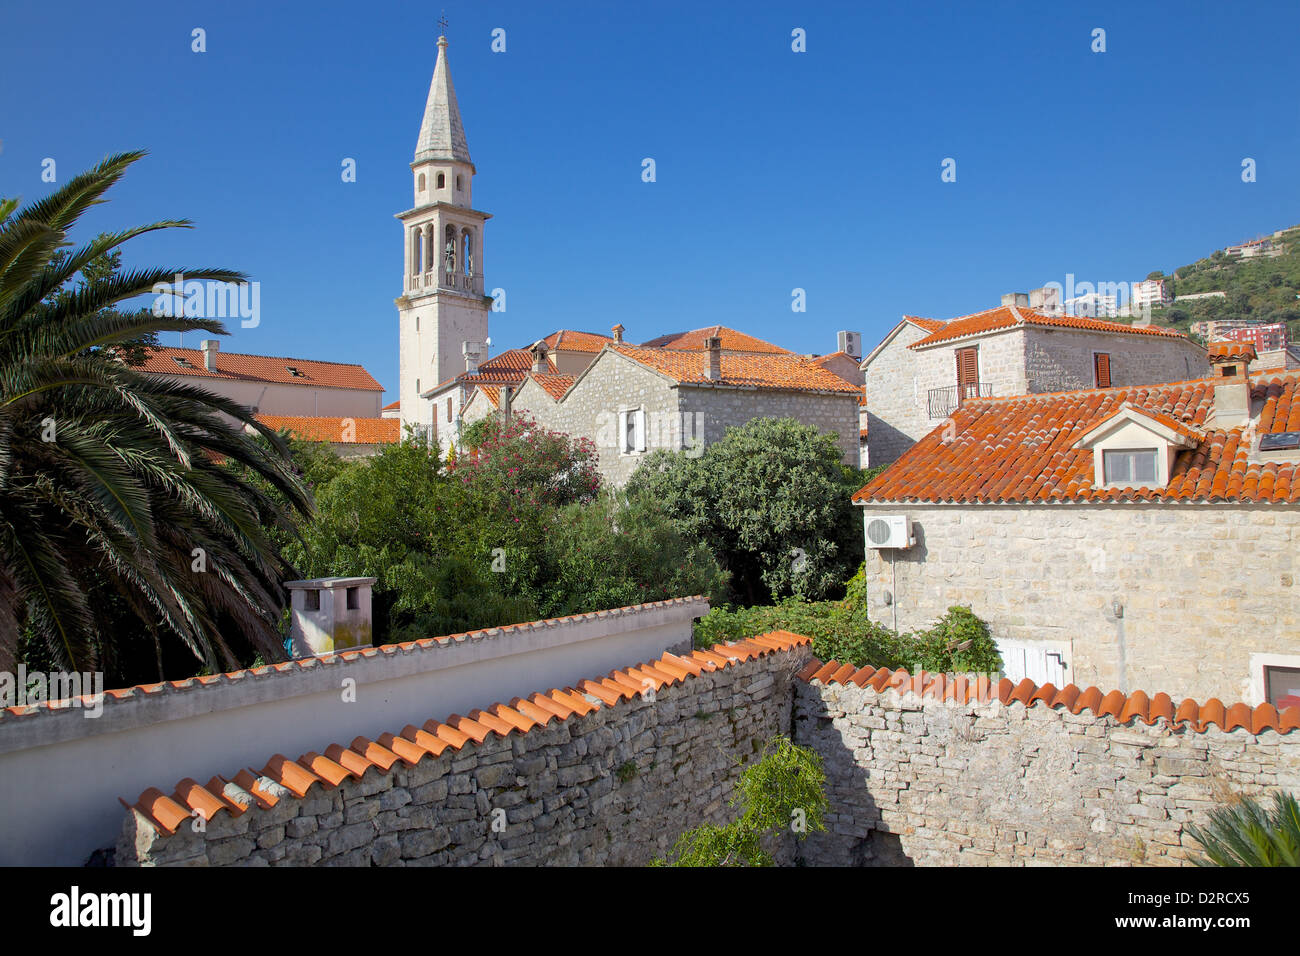 Church belltower from City Wall, Old Town, Budva, Montenegro, Europe - Stock Image